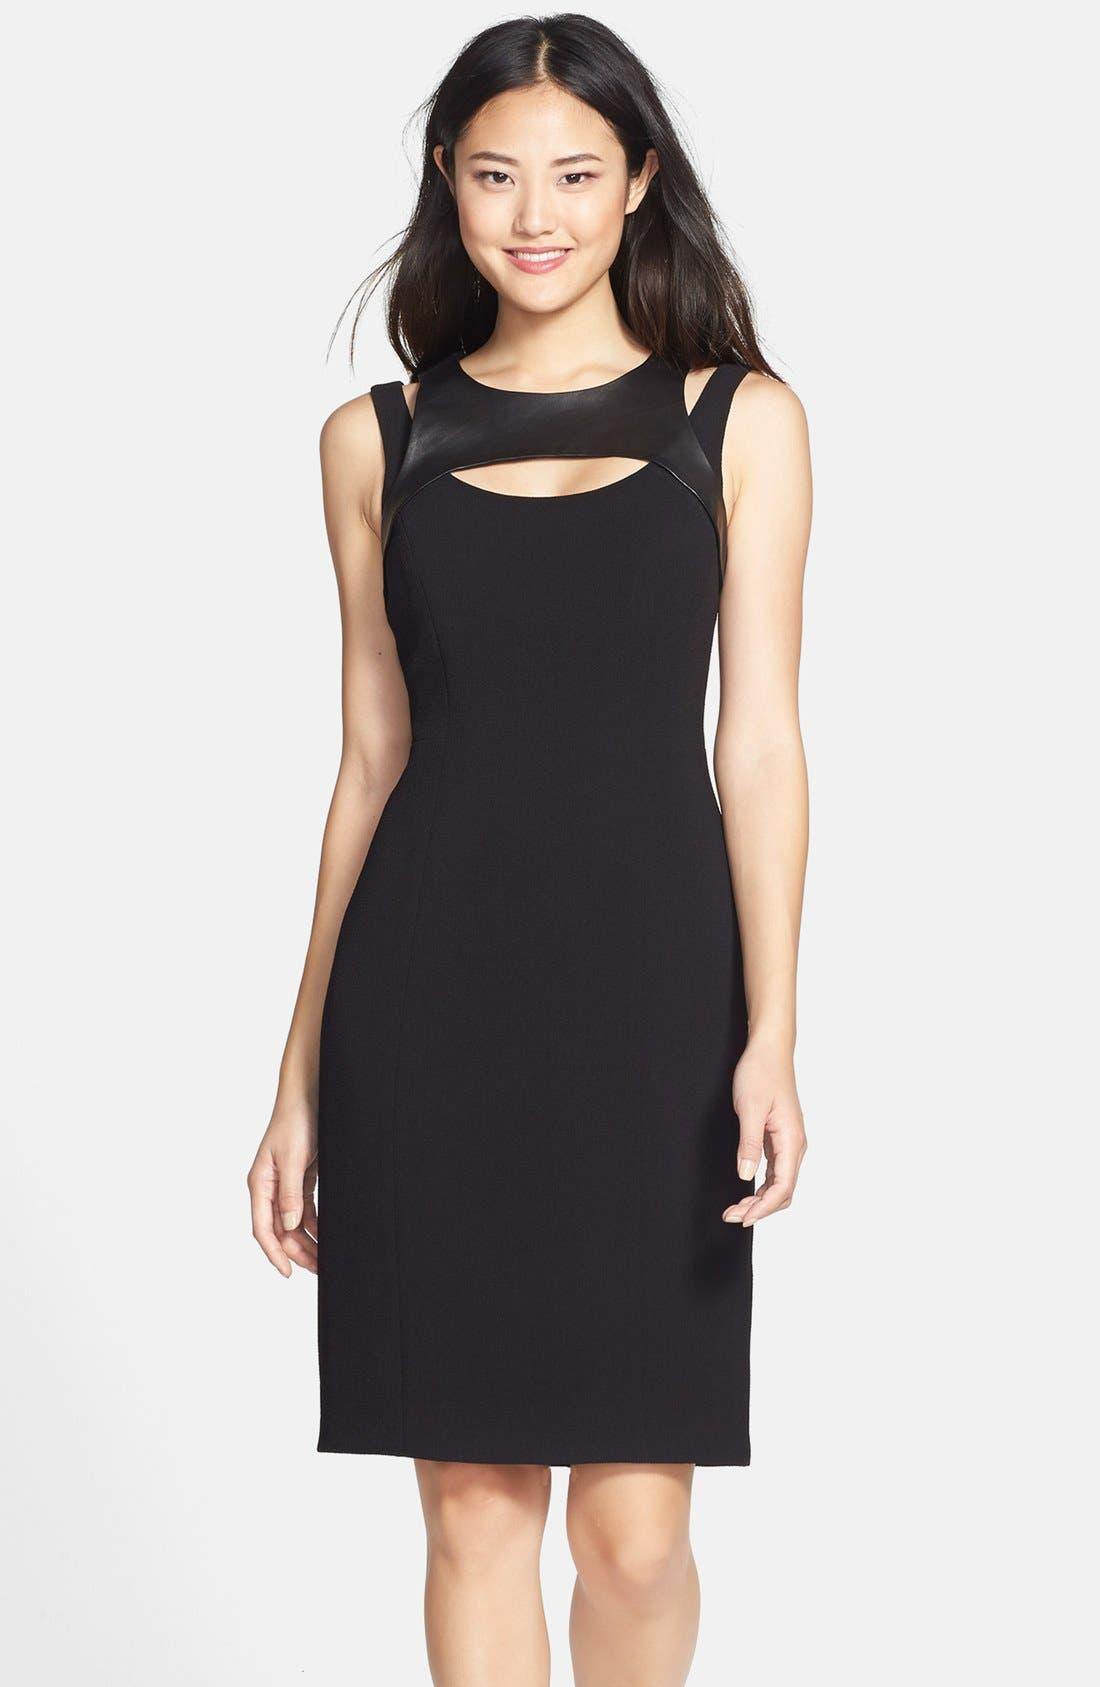 Alternate Image 1 Selected - Adrianna Papell Faux Leather Trim Cutout Sheath Dress